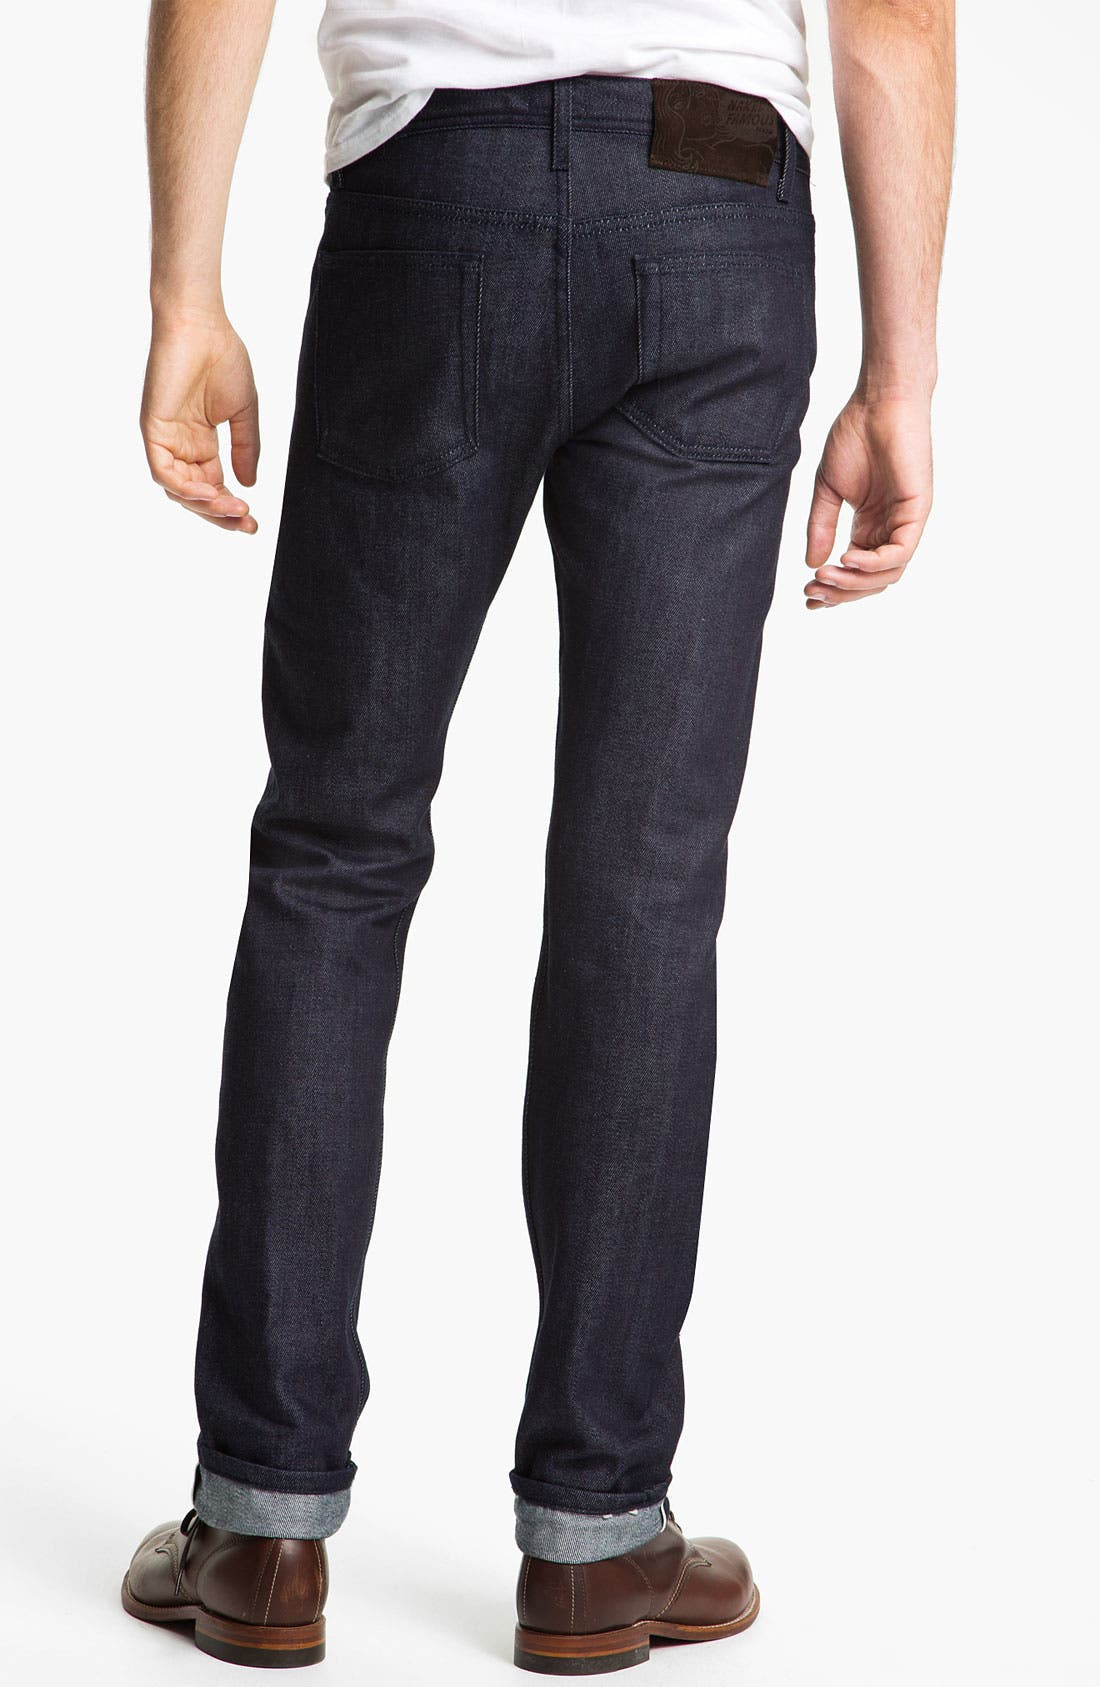 Alternate Image 1 Selected - Naked & Famous Denim 'Weird Guy' Slim Straight Leg Selvedge Jeans (Indigo)